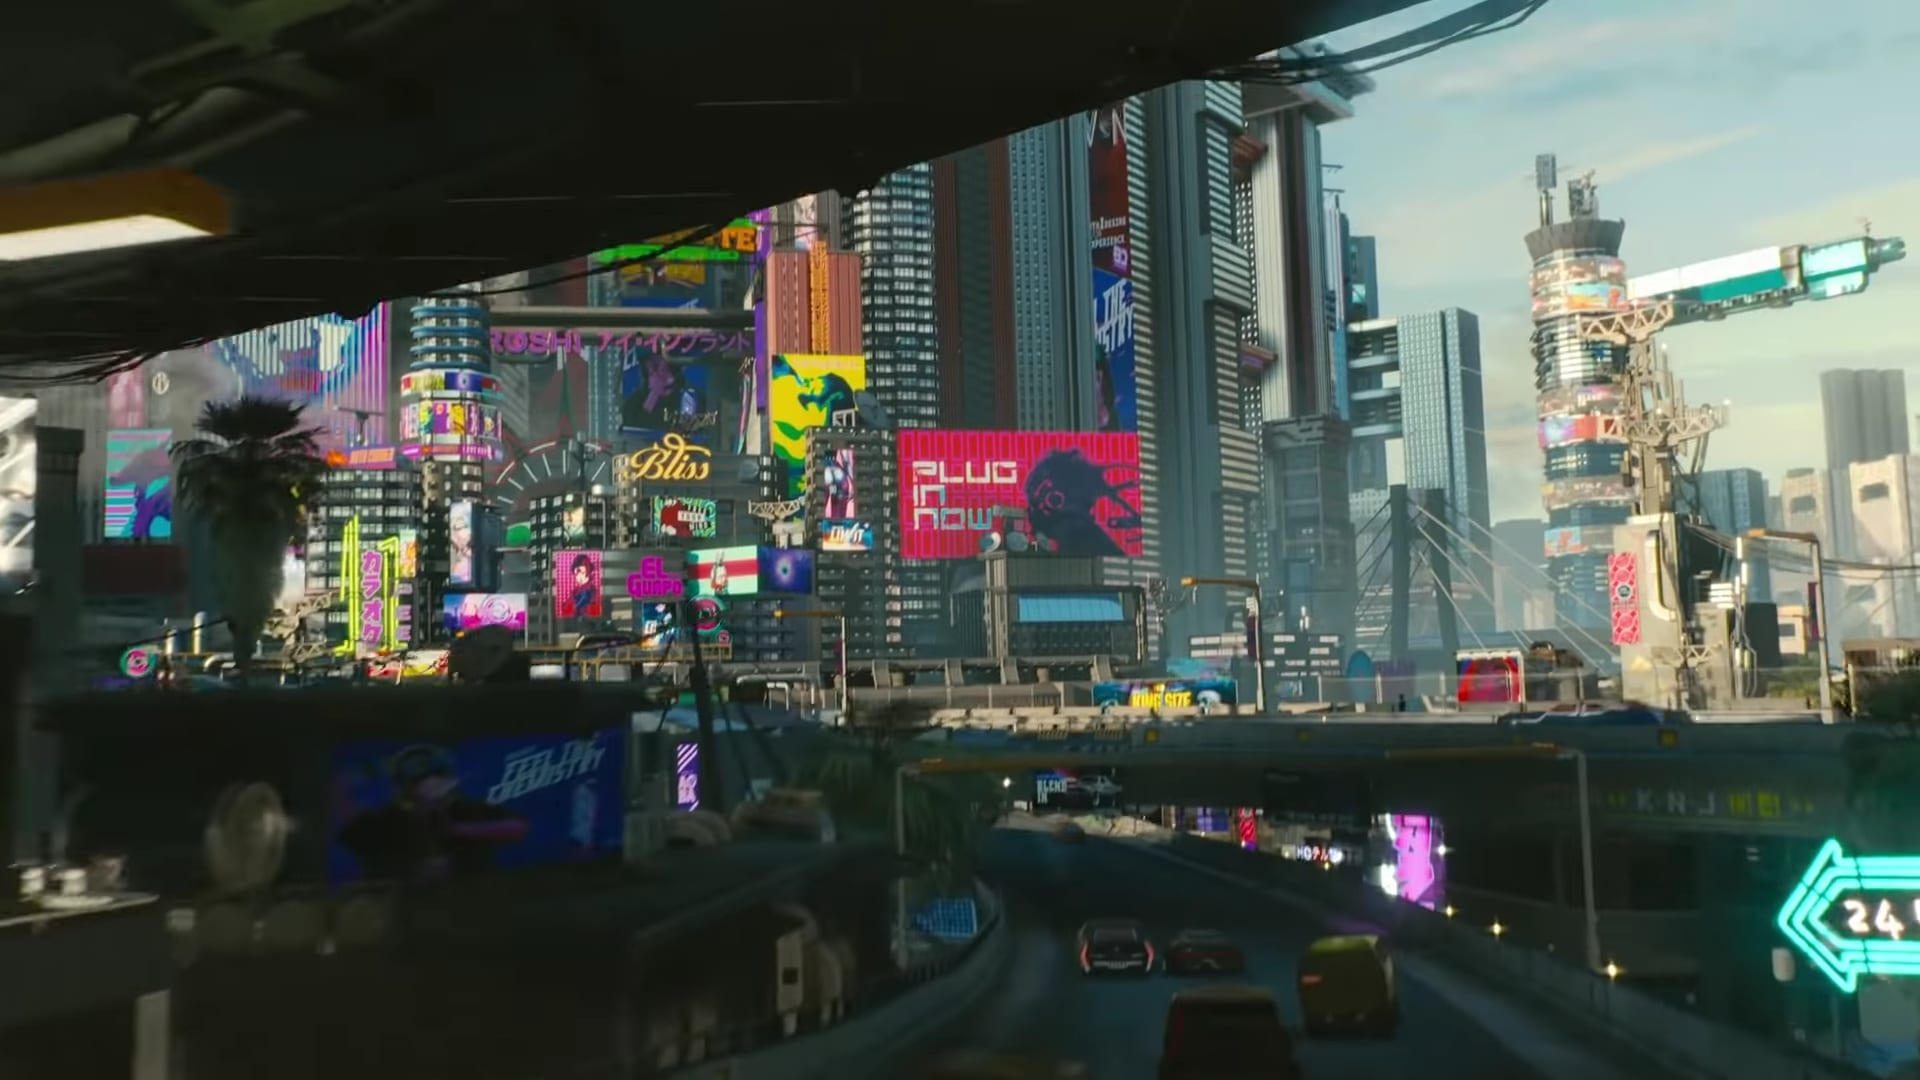 This Fan Made 3D Render of Cyberpunk 2077's Night City Is Awesome